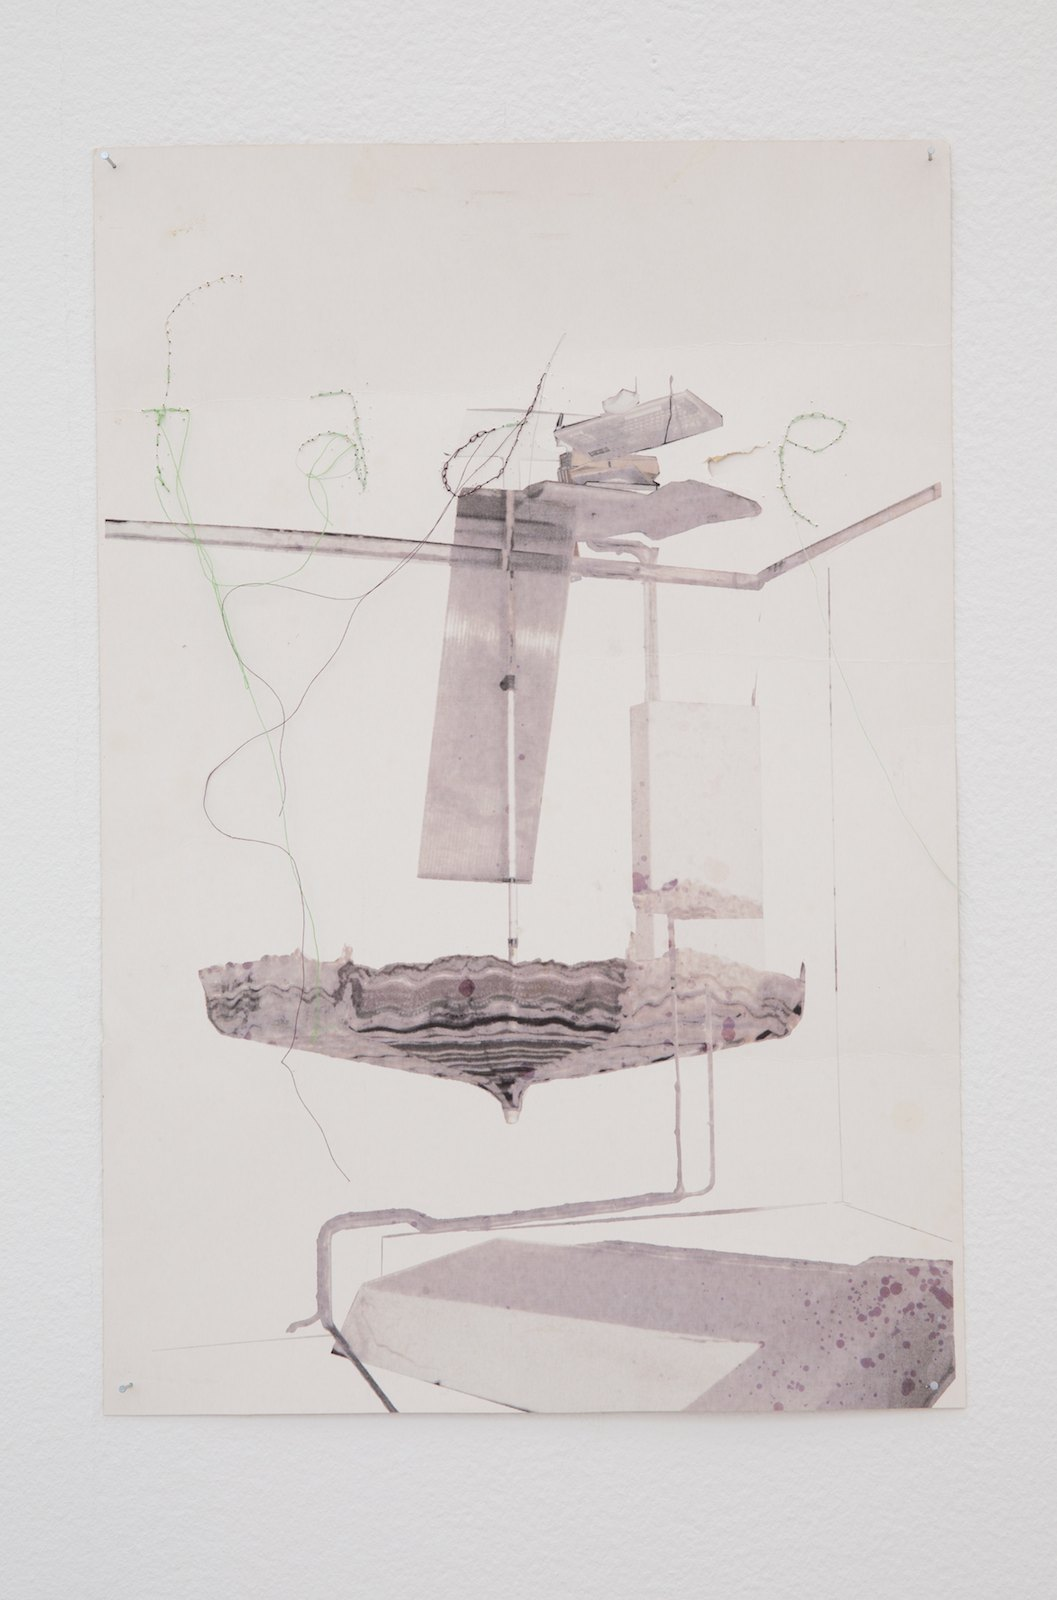 Fade, 2014, print and sewing on card board, 47 x 32 cm